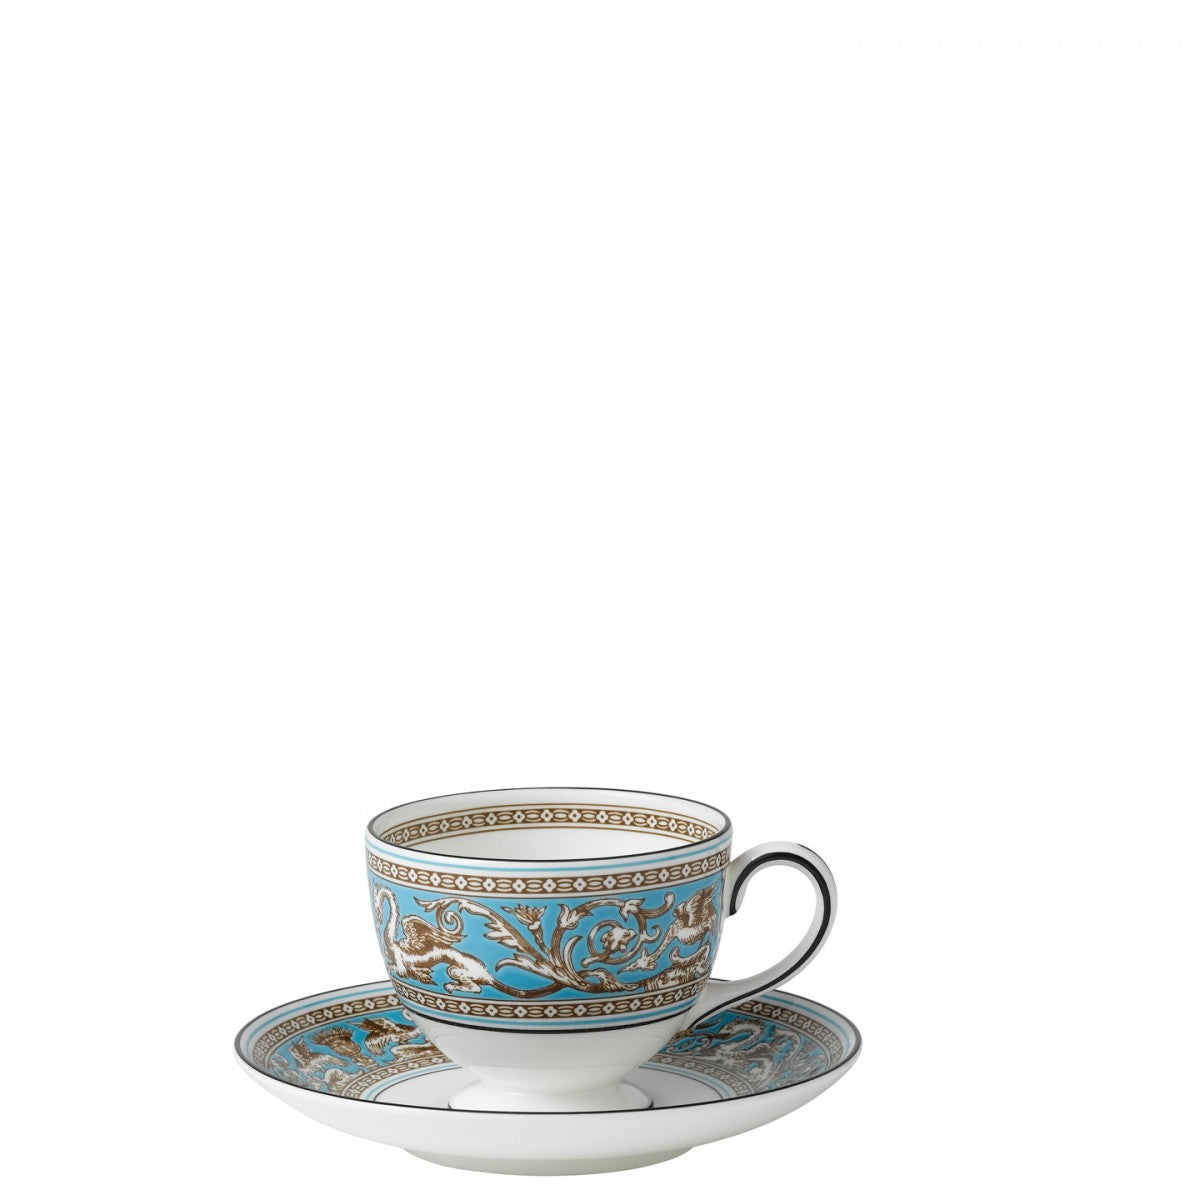 Florentine Turquoise Teacup Leigh